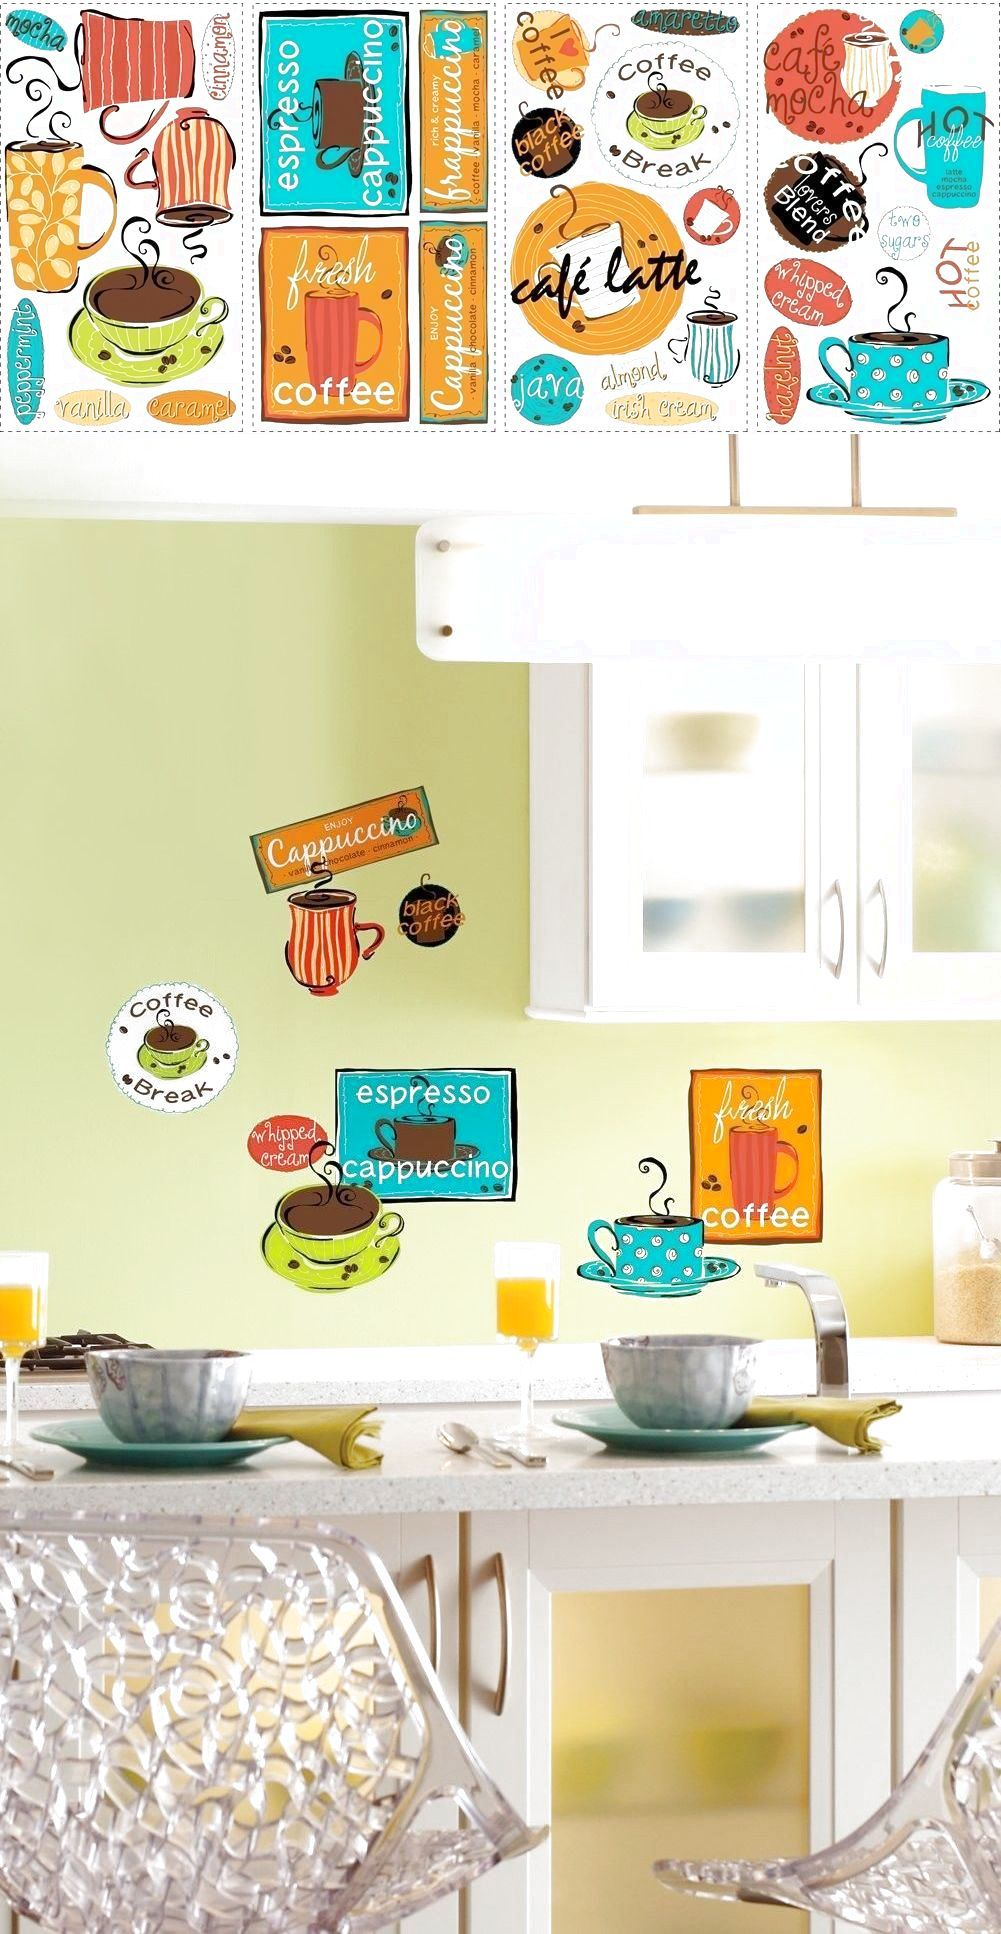 Cafe big wall stickers coffee cup java kitchen room decor decals espresso new also rh za pinterest